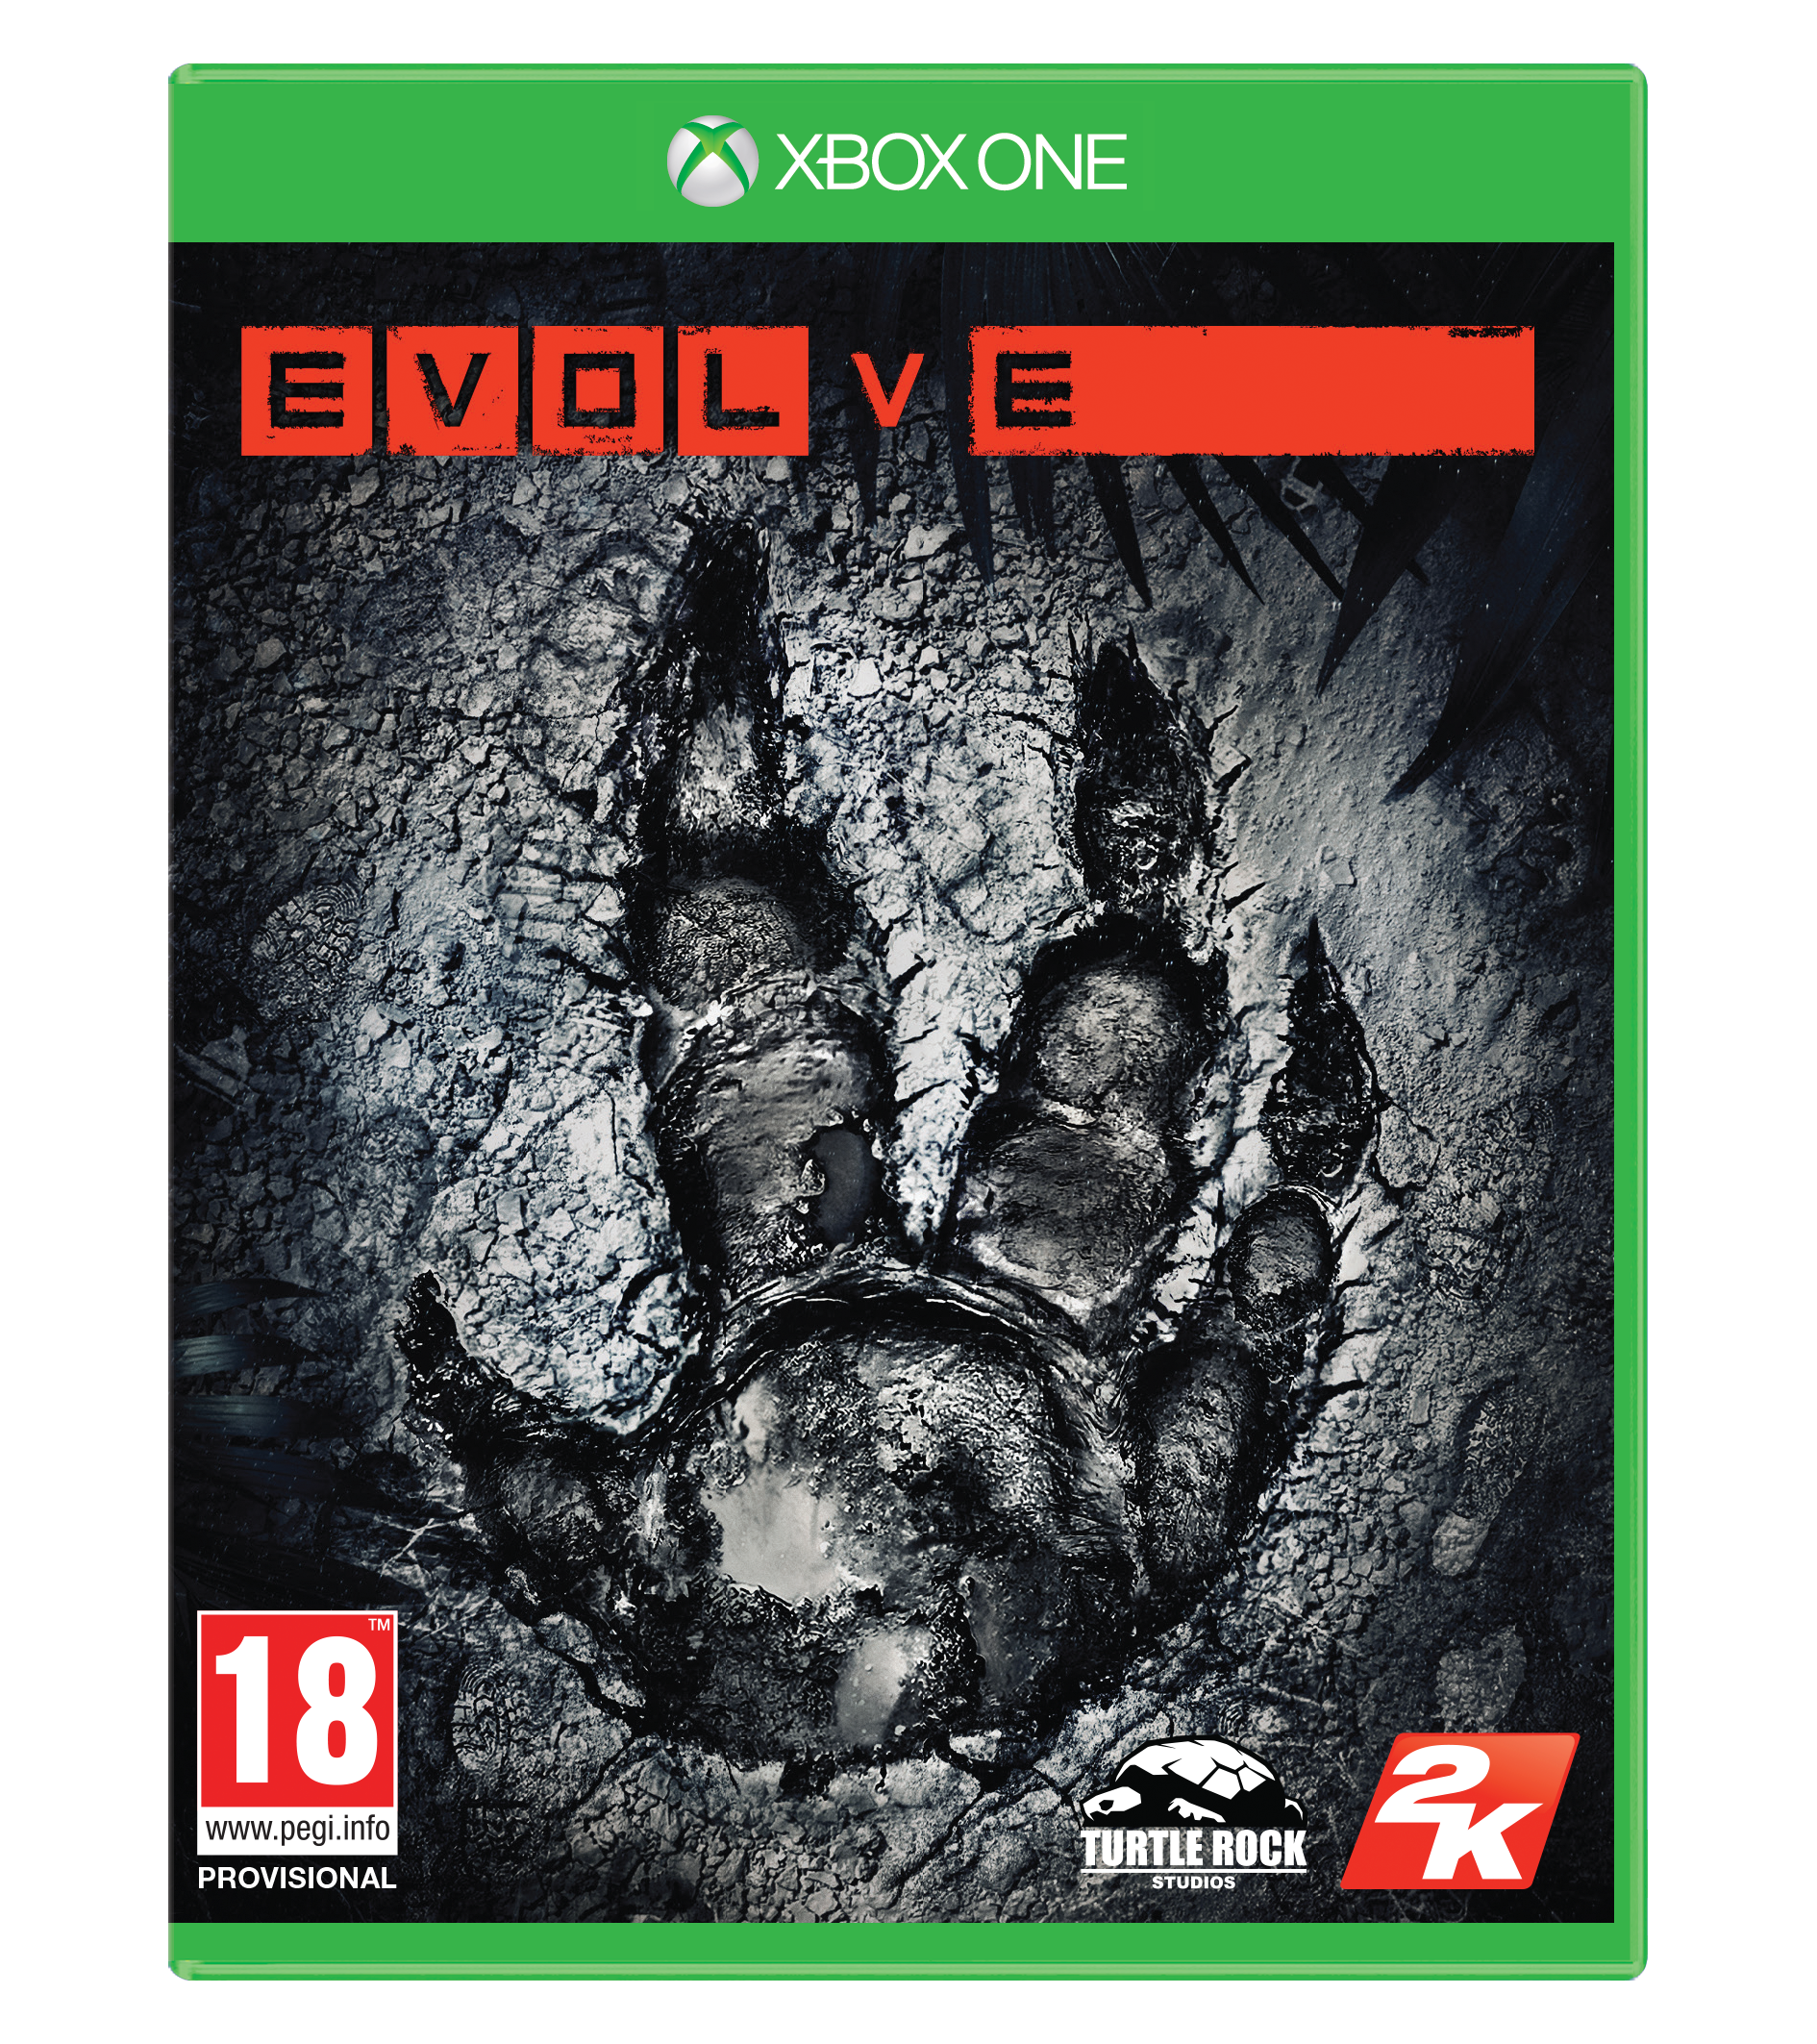 Xbox One Evolve Hands On Preview This Is Xbox